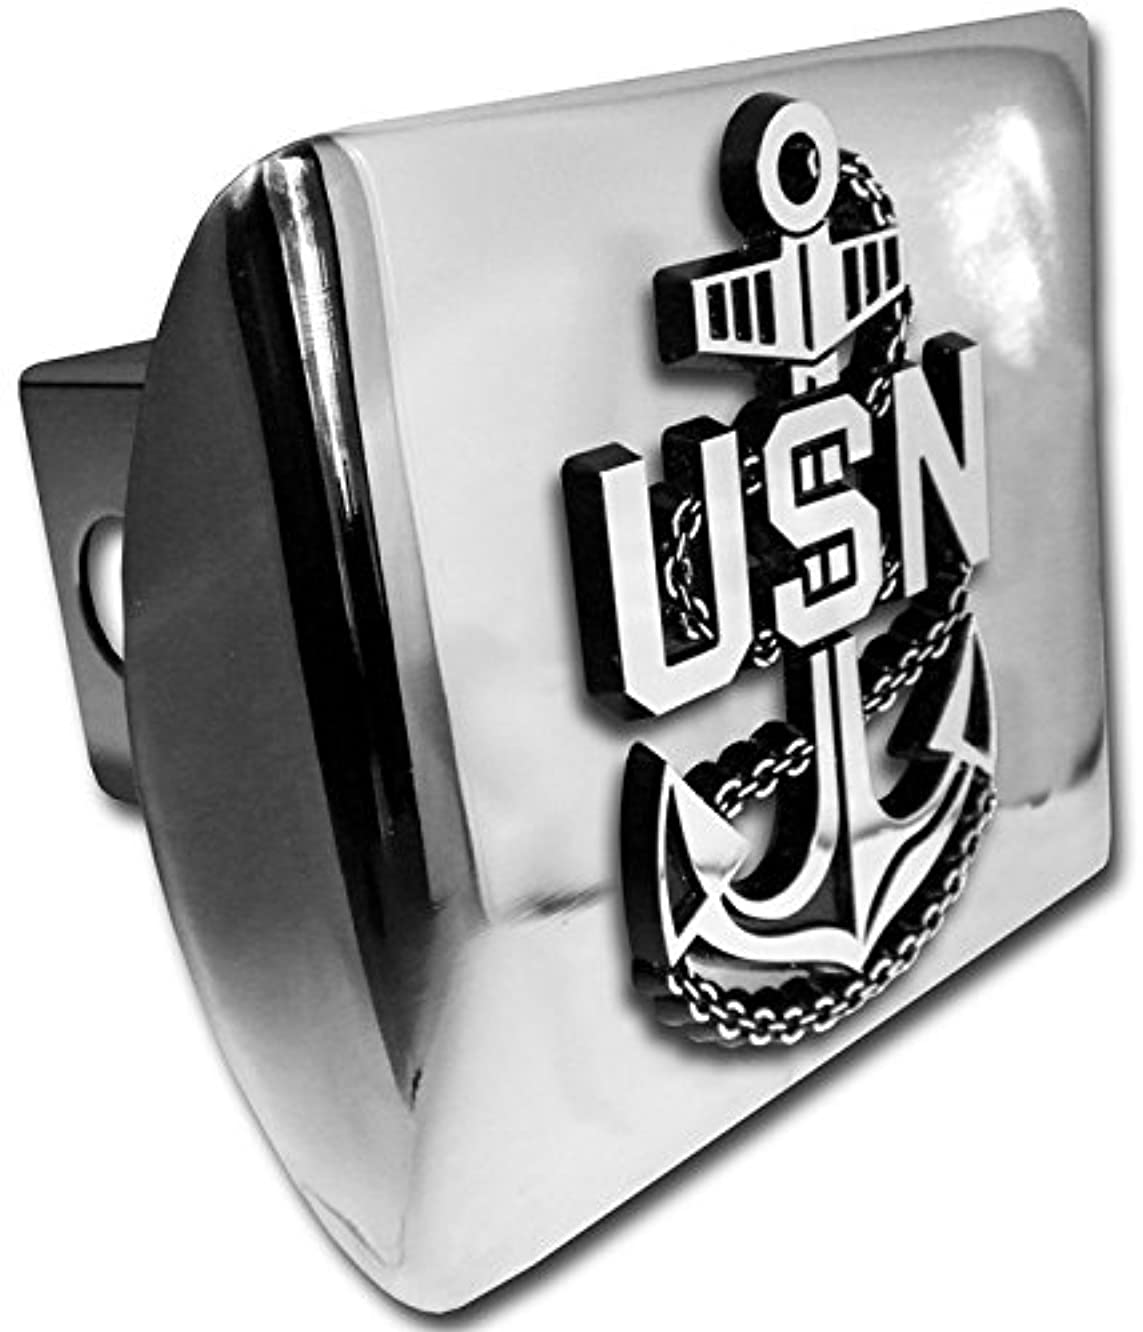 United State Navy Anchor emblem on chrome METAL Hitch Cover